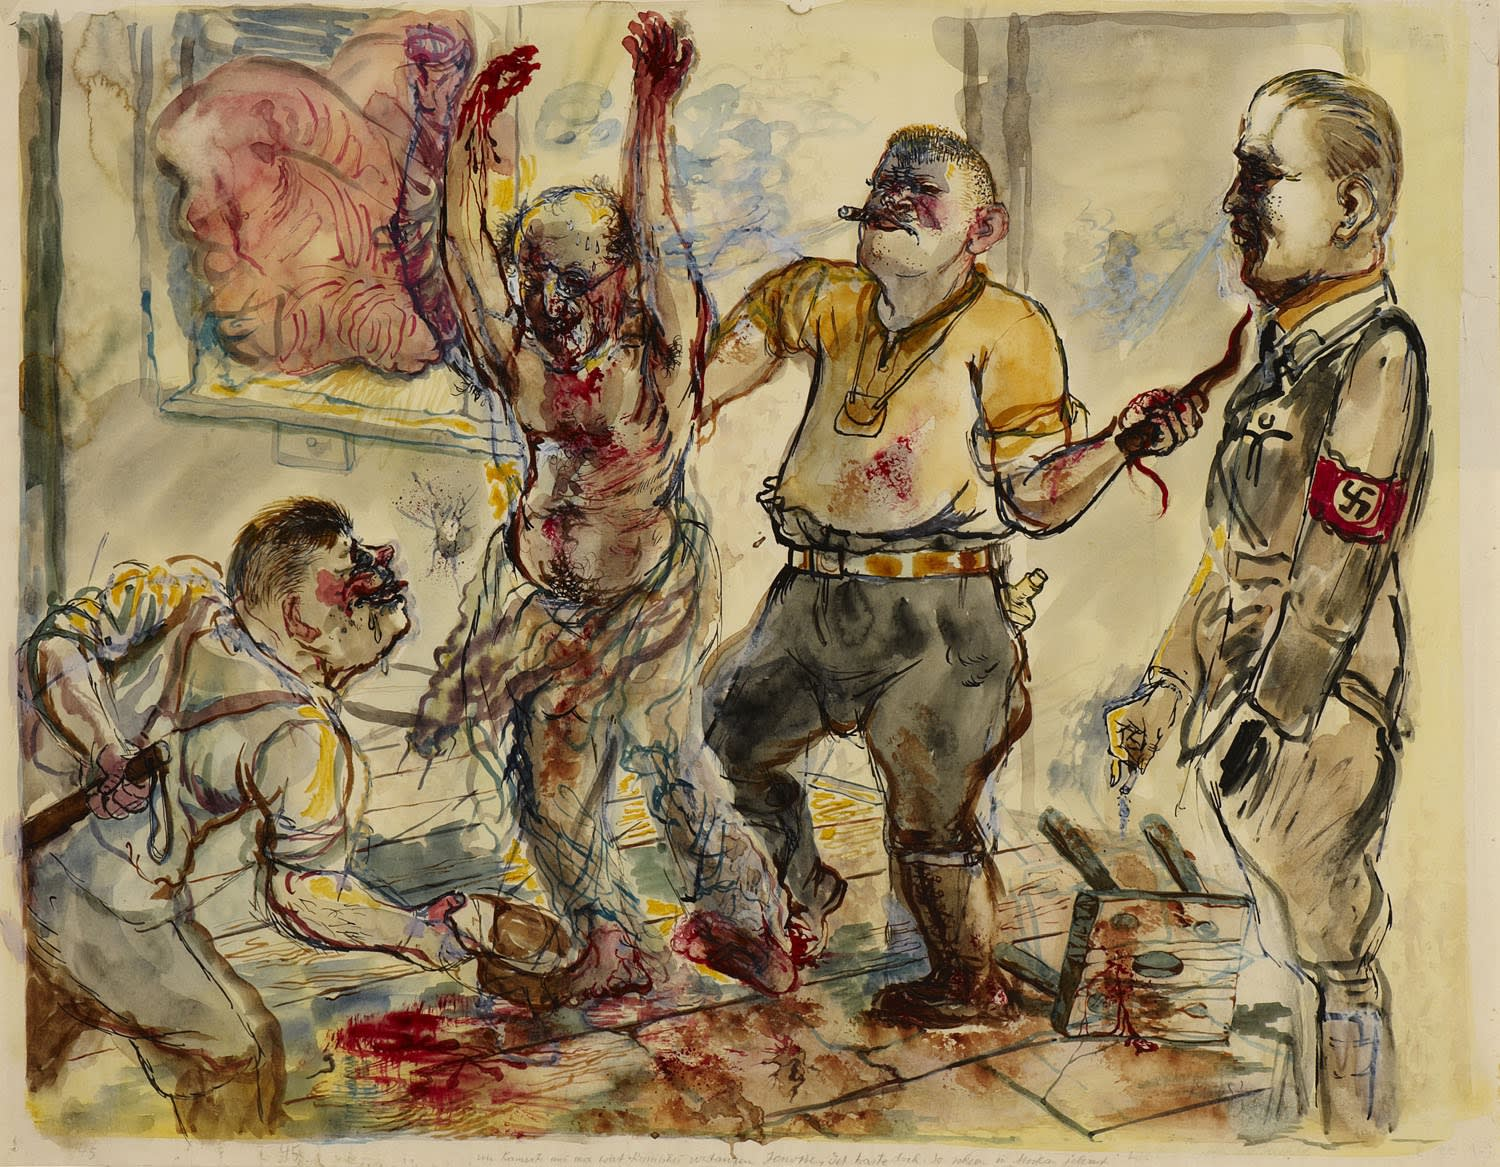 George Grosz (1893-1959) Interrogation 1938 Watercolour and ink on paper 46 x 59 cm Ben Uri Collection © George Grosz estate To see and discover more about this artist click here